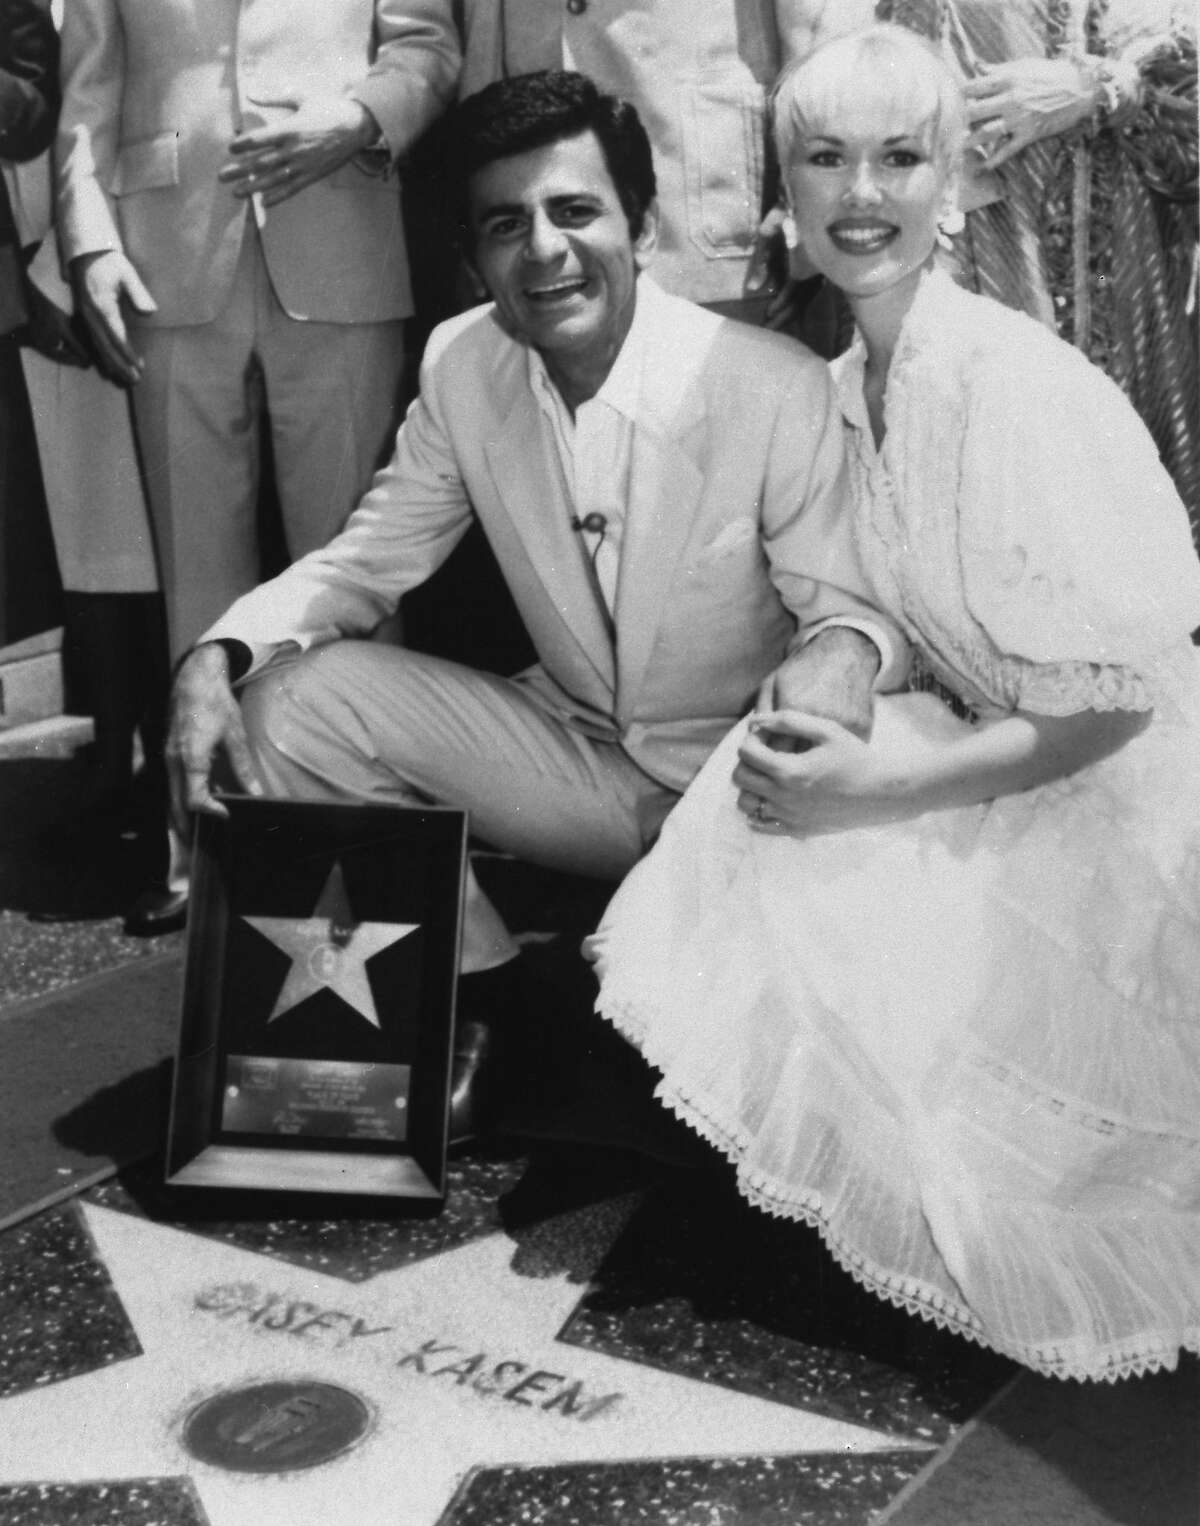 FILE - In this April 27, 1981 file photo, Casey Kasem and his wife Jean smile as he receives his own